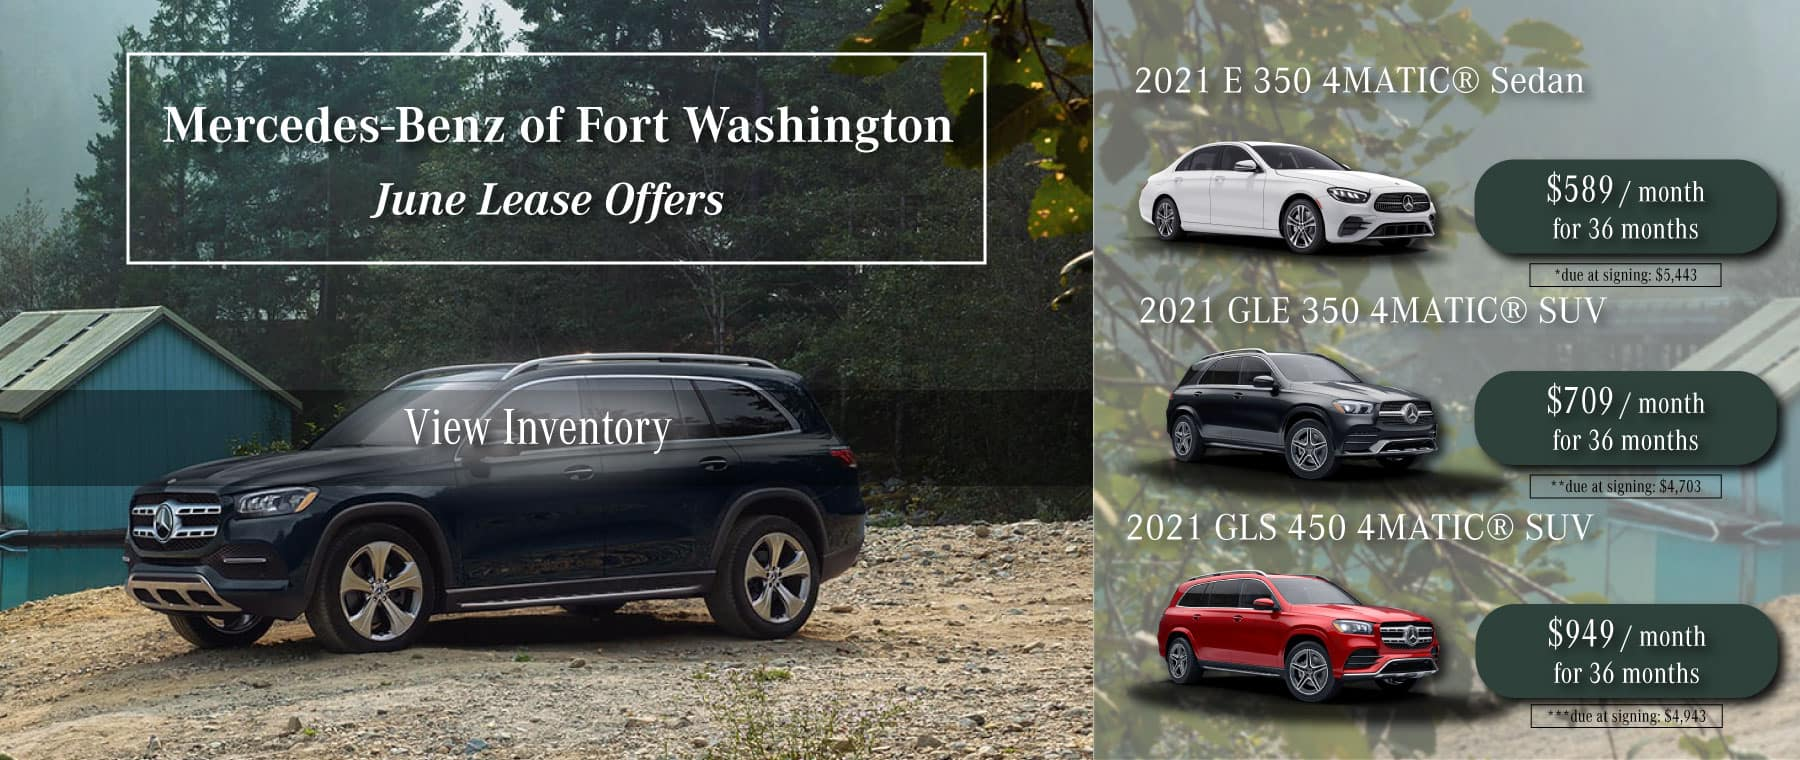 mercedes-benz of fort washington 2021 new lease specials